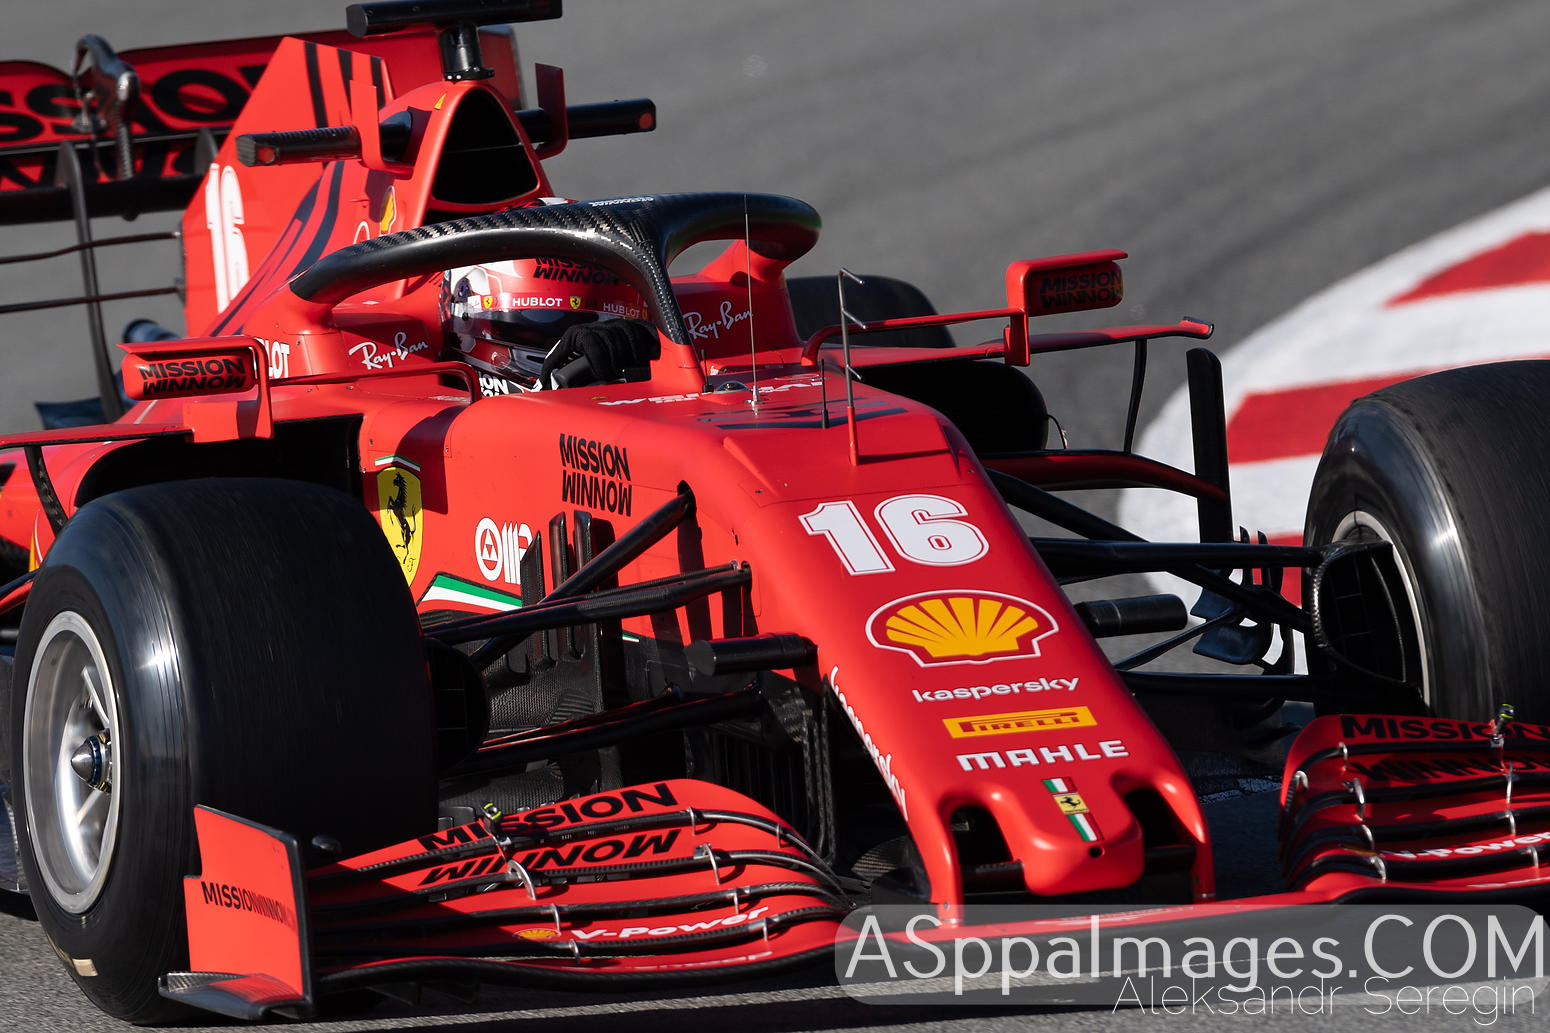 86.2020.FIA_.F1.Test_.Barcelona.Day_.4.FER_.ASppaImges.COM_ by ASppaImages.COM | Aleksandr B. Seregin (c).